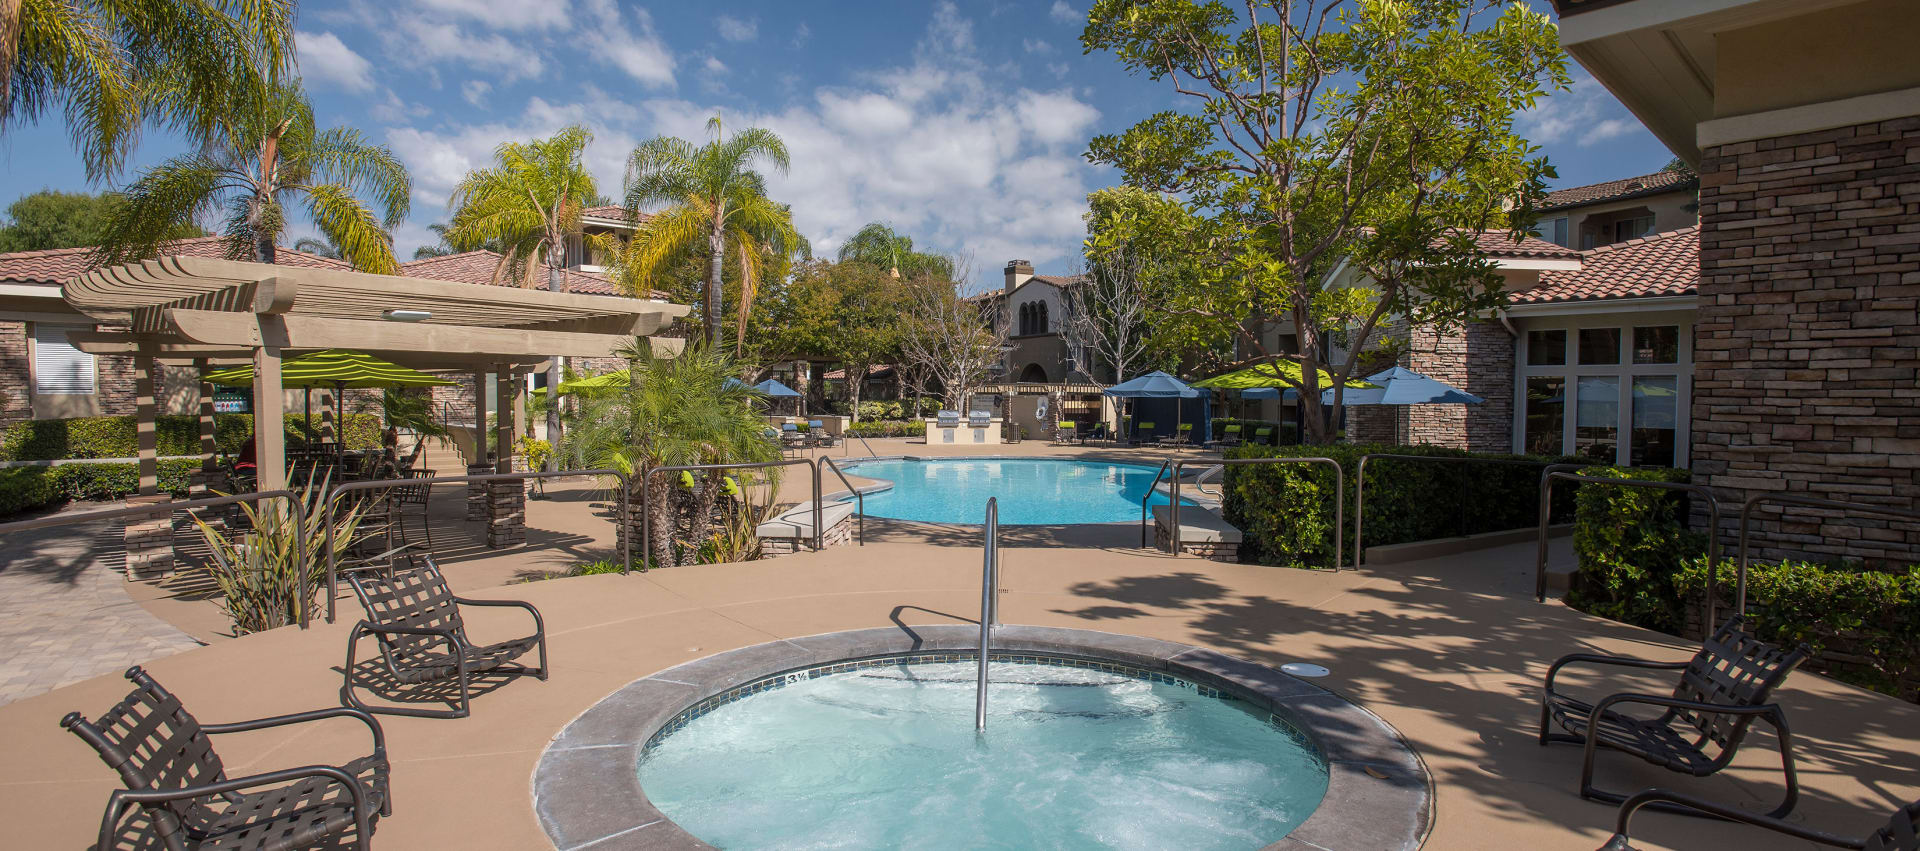 Pool deck and spa at Aliso Veijo Apartments